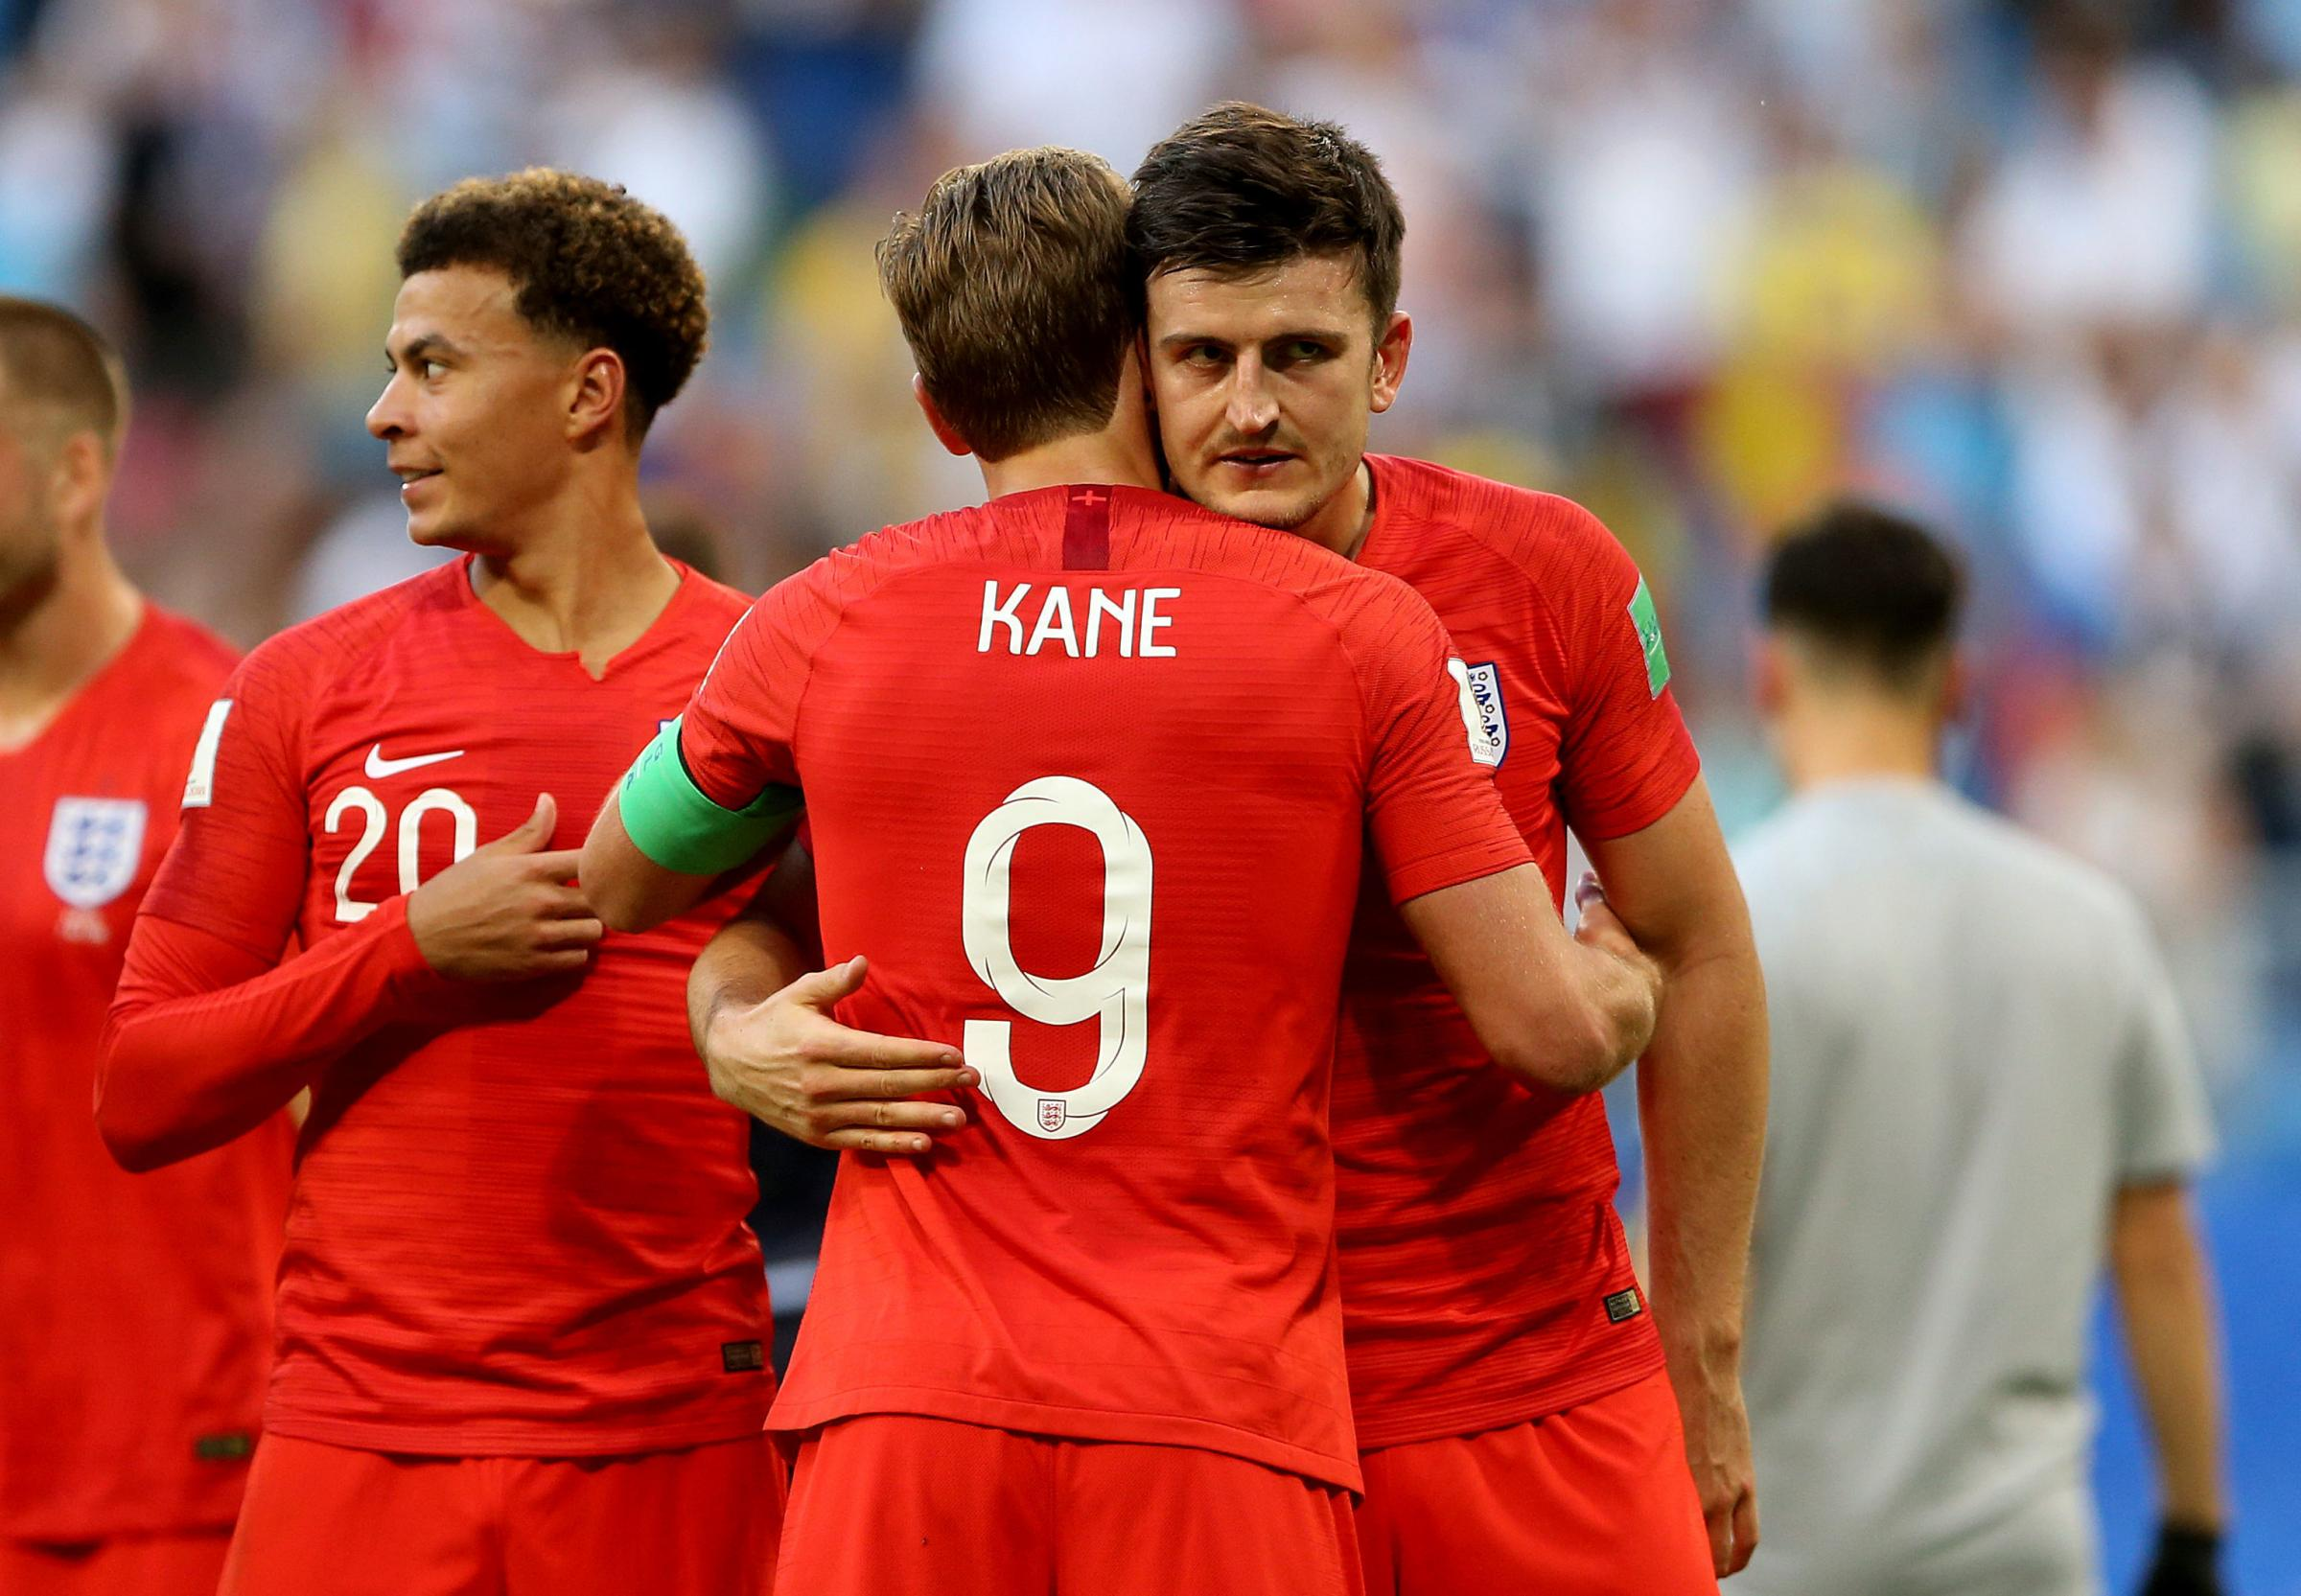 England's Harry Kane (centre) with England's Harry Maguire after the final whistle during the FIFA World Cup, Quarter Final match at the Samara Stadium. PRESS ASSOCIATION Photo. Picture date: Saturday July 7, 2018. See PA story WORLDCUP Sweden. Ph